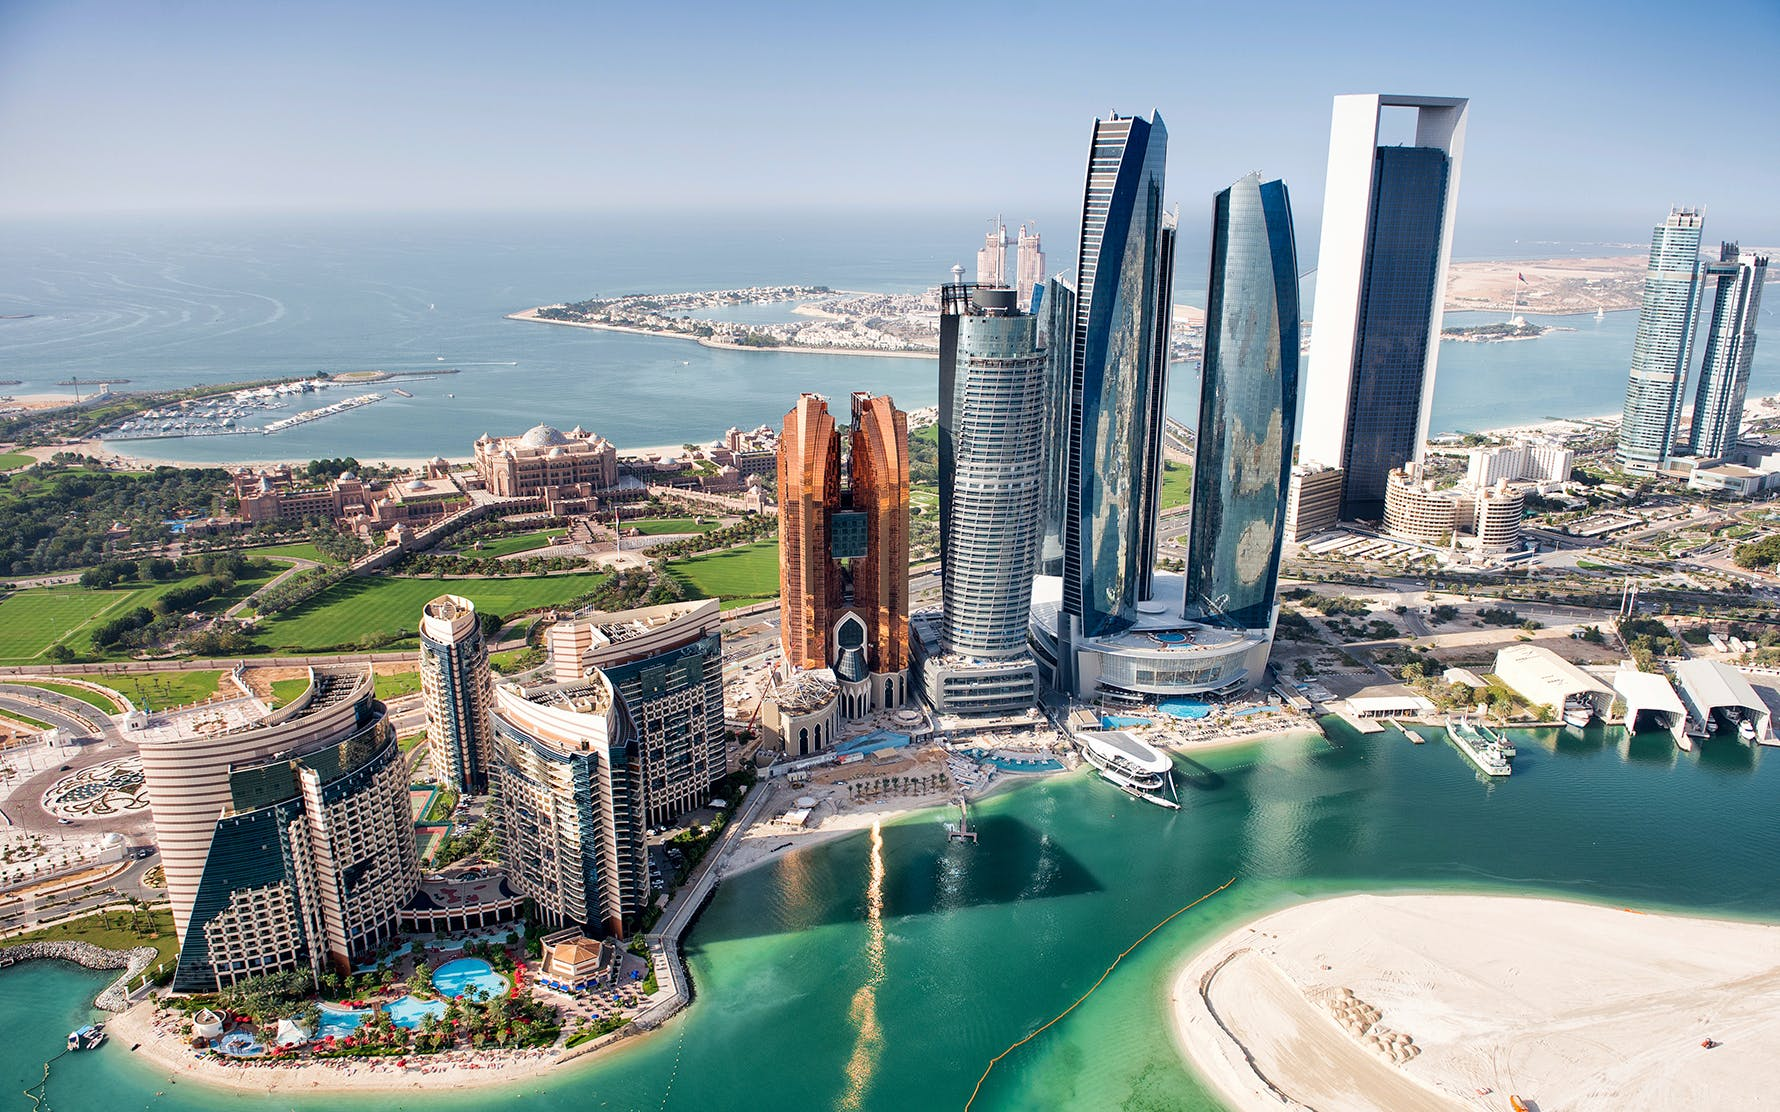 Seaplane Tour and Yas Waterworld (Dubai to Abu Dhabi)